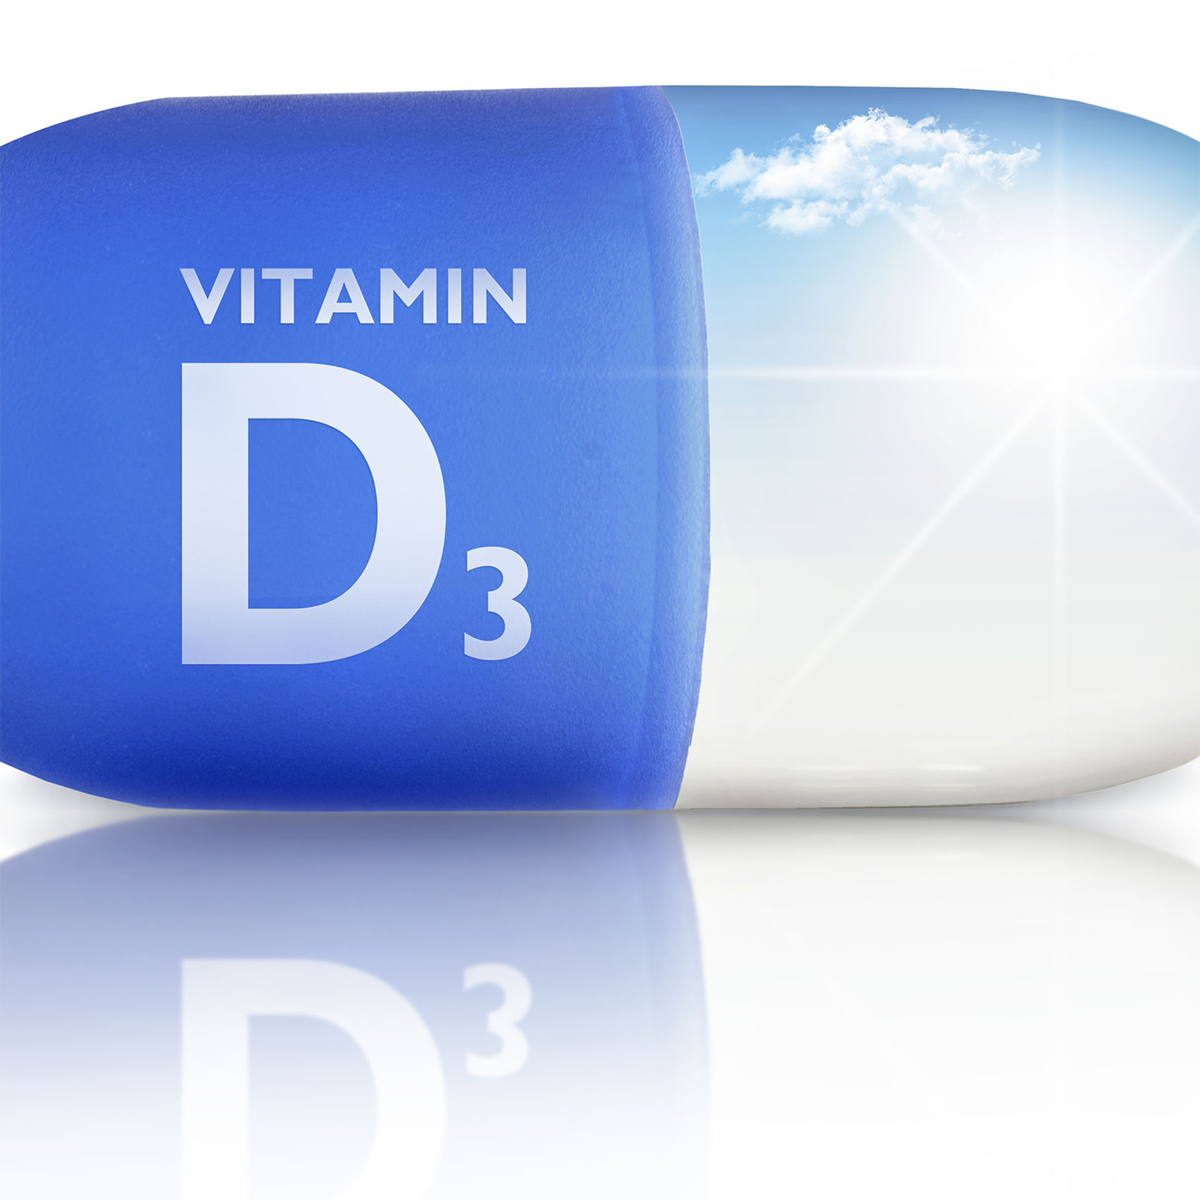 Vitamin D Deficiency Pre- and Post-Bariatric Surgery